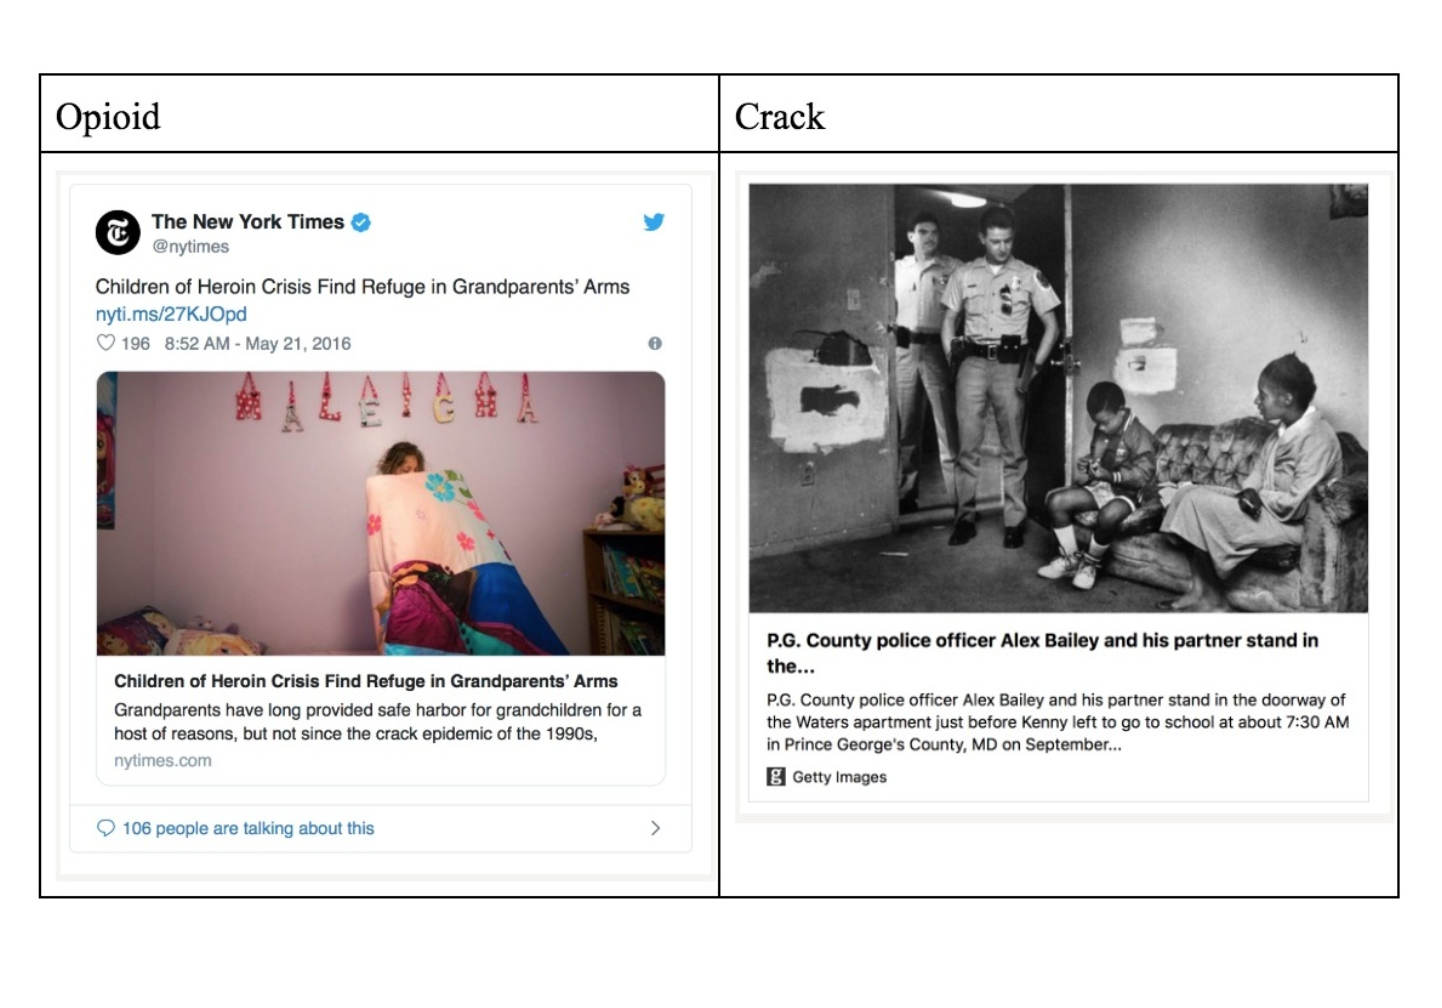 """Media's Softer Tone on Opioid Crisis - Michael Shaw of Reading the Pictures provides one of our favorite pieces on racial bias and the drug war. Read more about the """"clear double standard in the visual framing of the opioid crisis."""""""